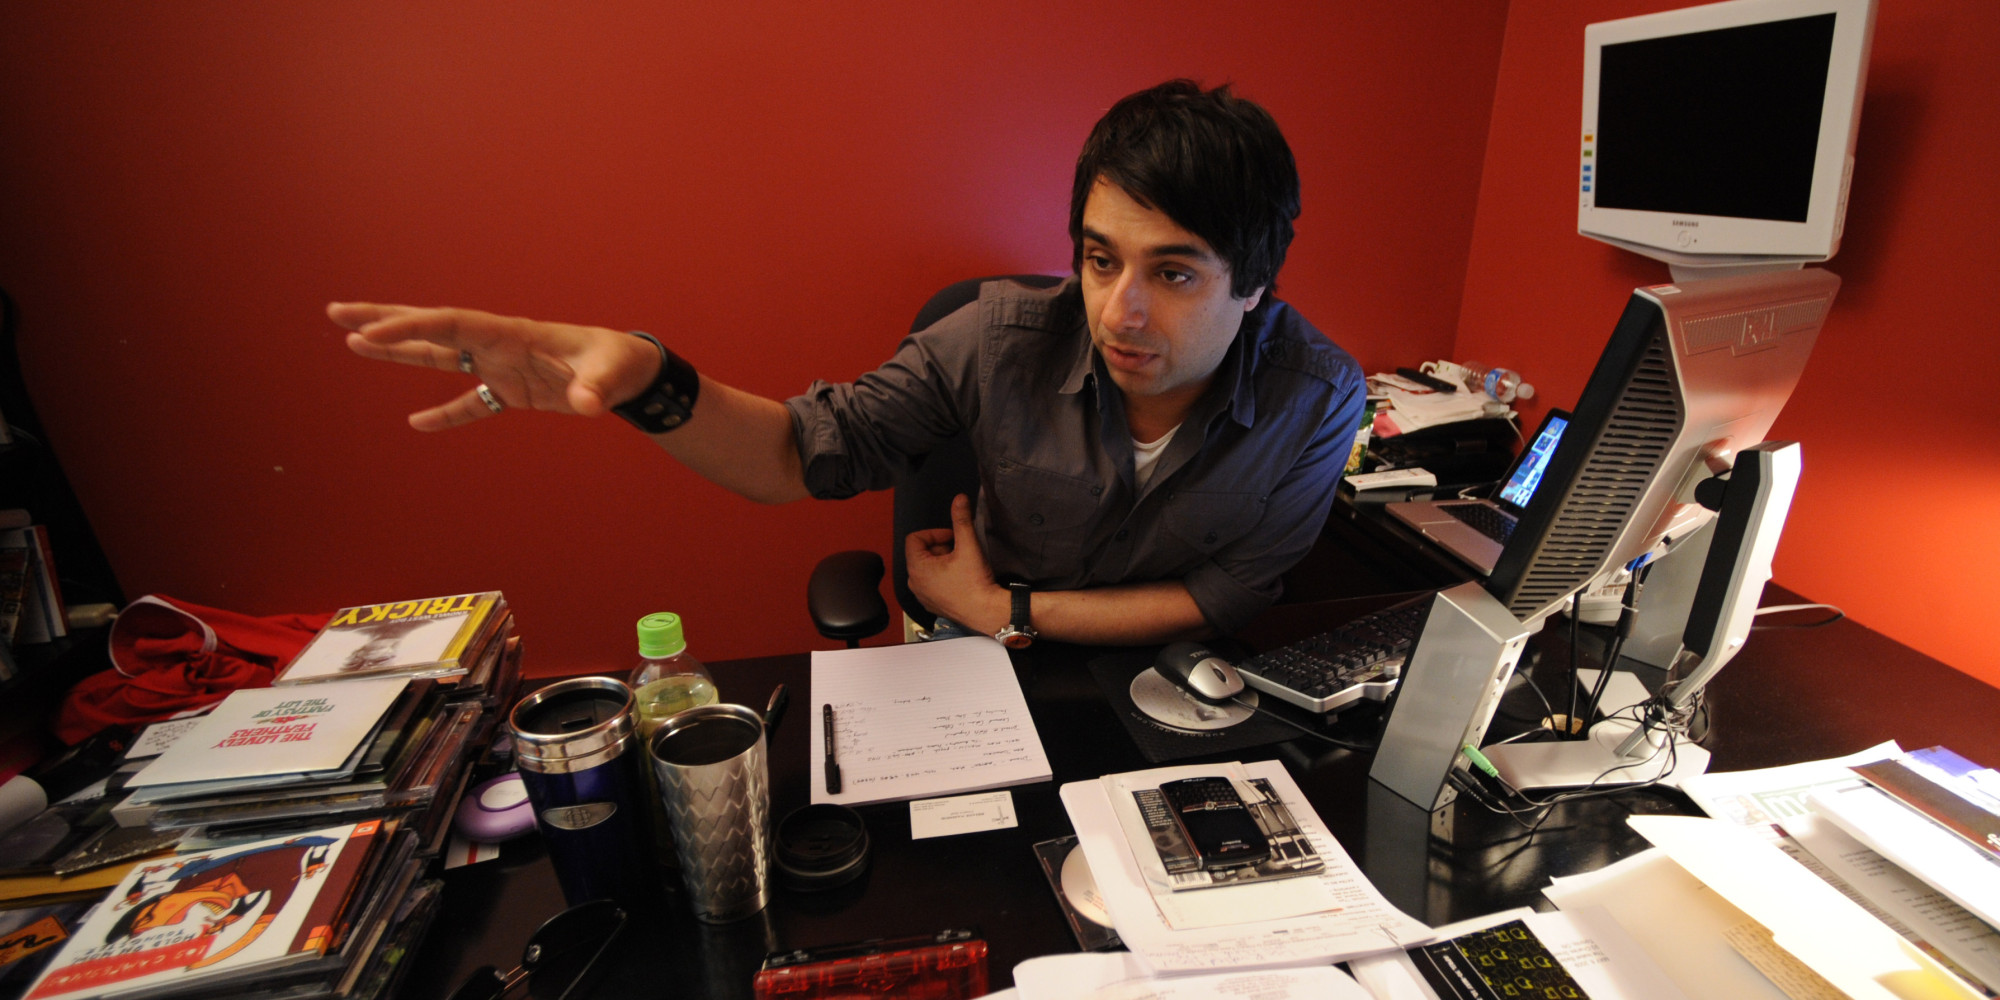 Jian Ghomeshi: CBC fired me for sexual behavior 'unbecoming of a prominent host'